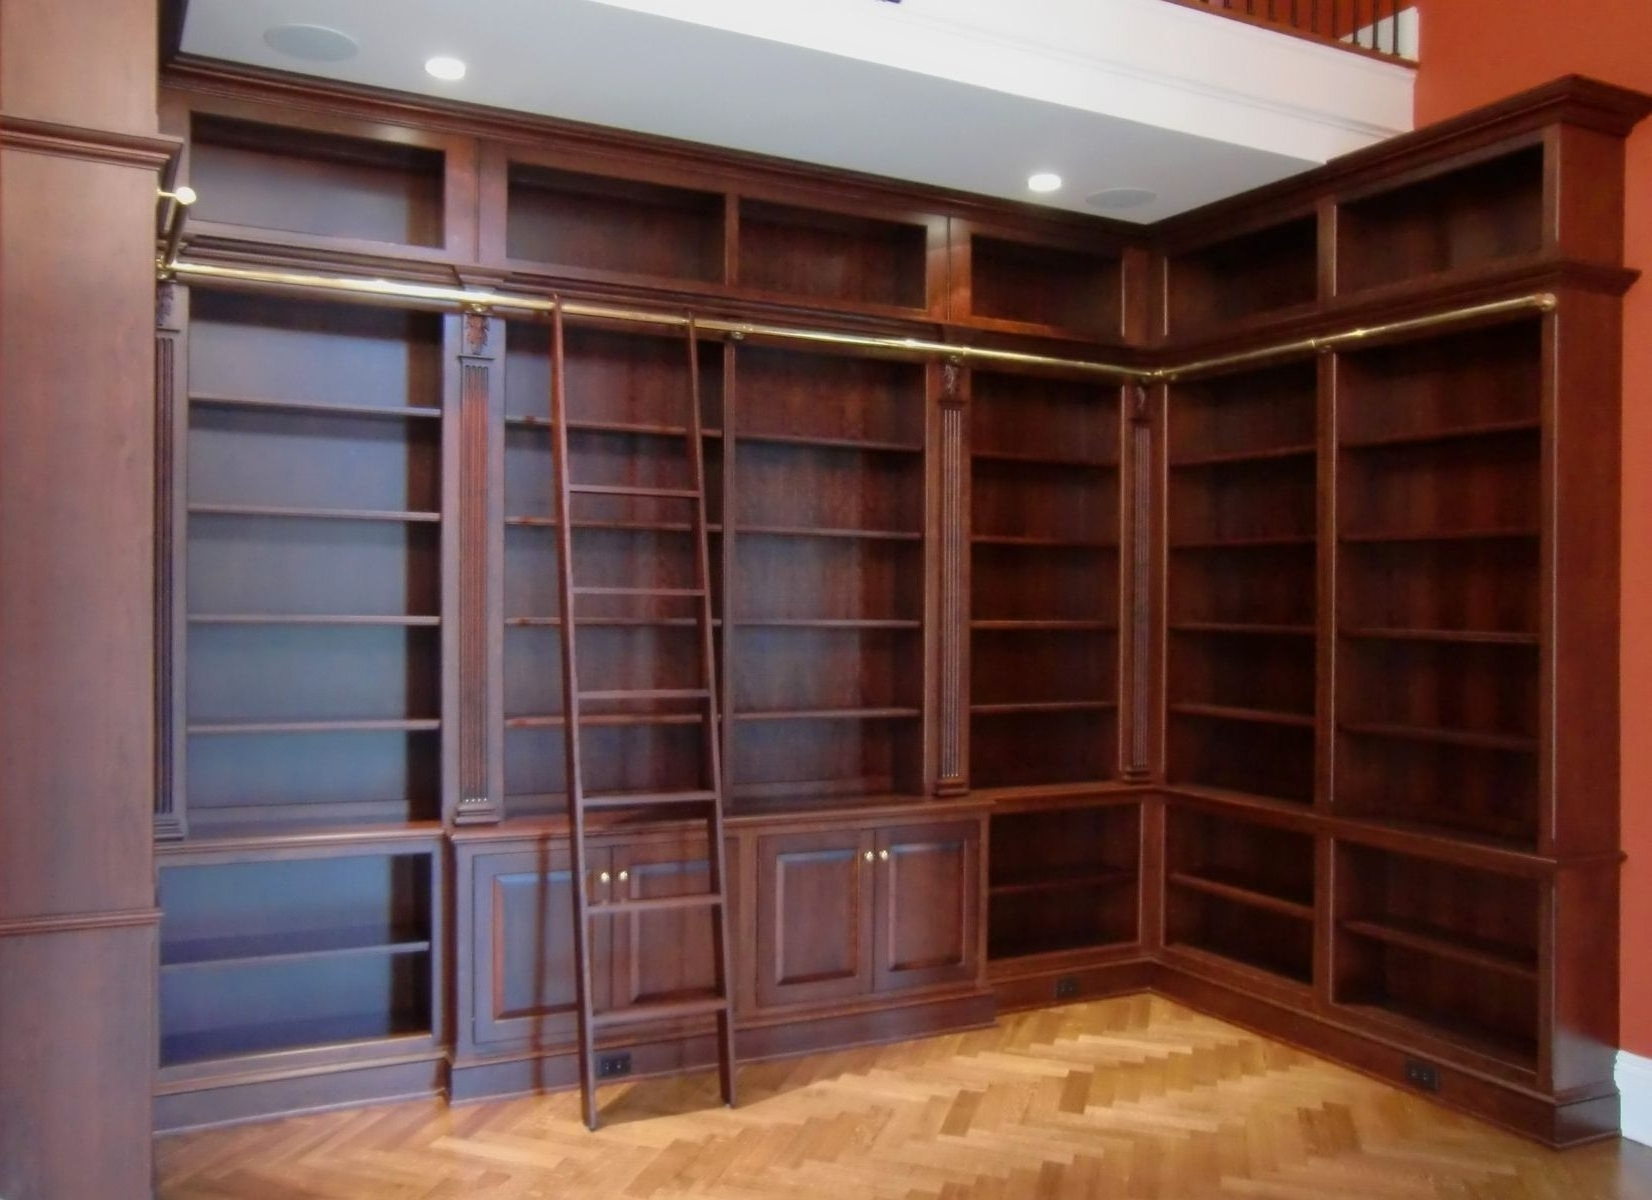 American Hwy Inside Bookcases With Ladder And Rail (View 12 of 15)